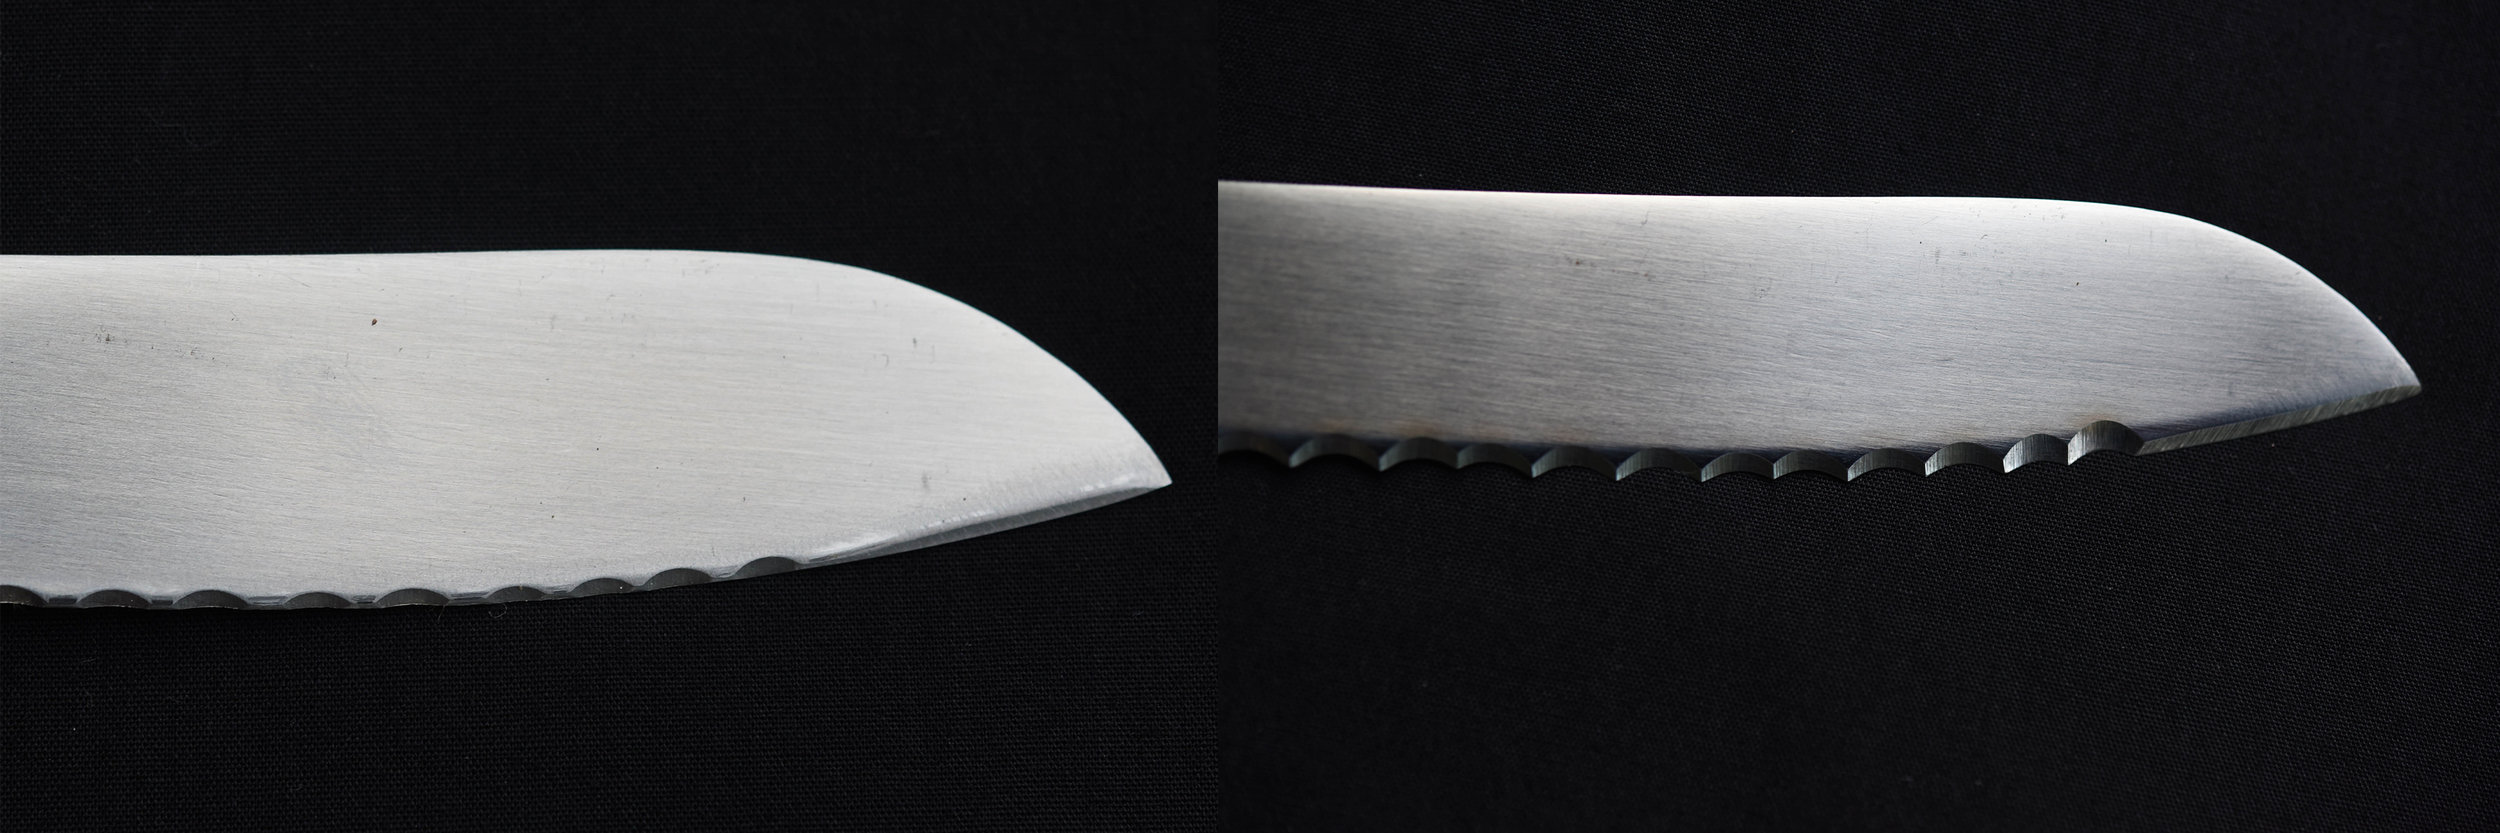 A before and after shot of a serrated bread knife. In the left image the serrations are almost completely gone due to extensive use. In the image to the right the serrations have been re-cut by hand on our diamond wheel. The knife is now as good as, if not better than new.